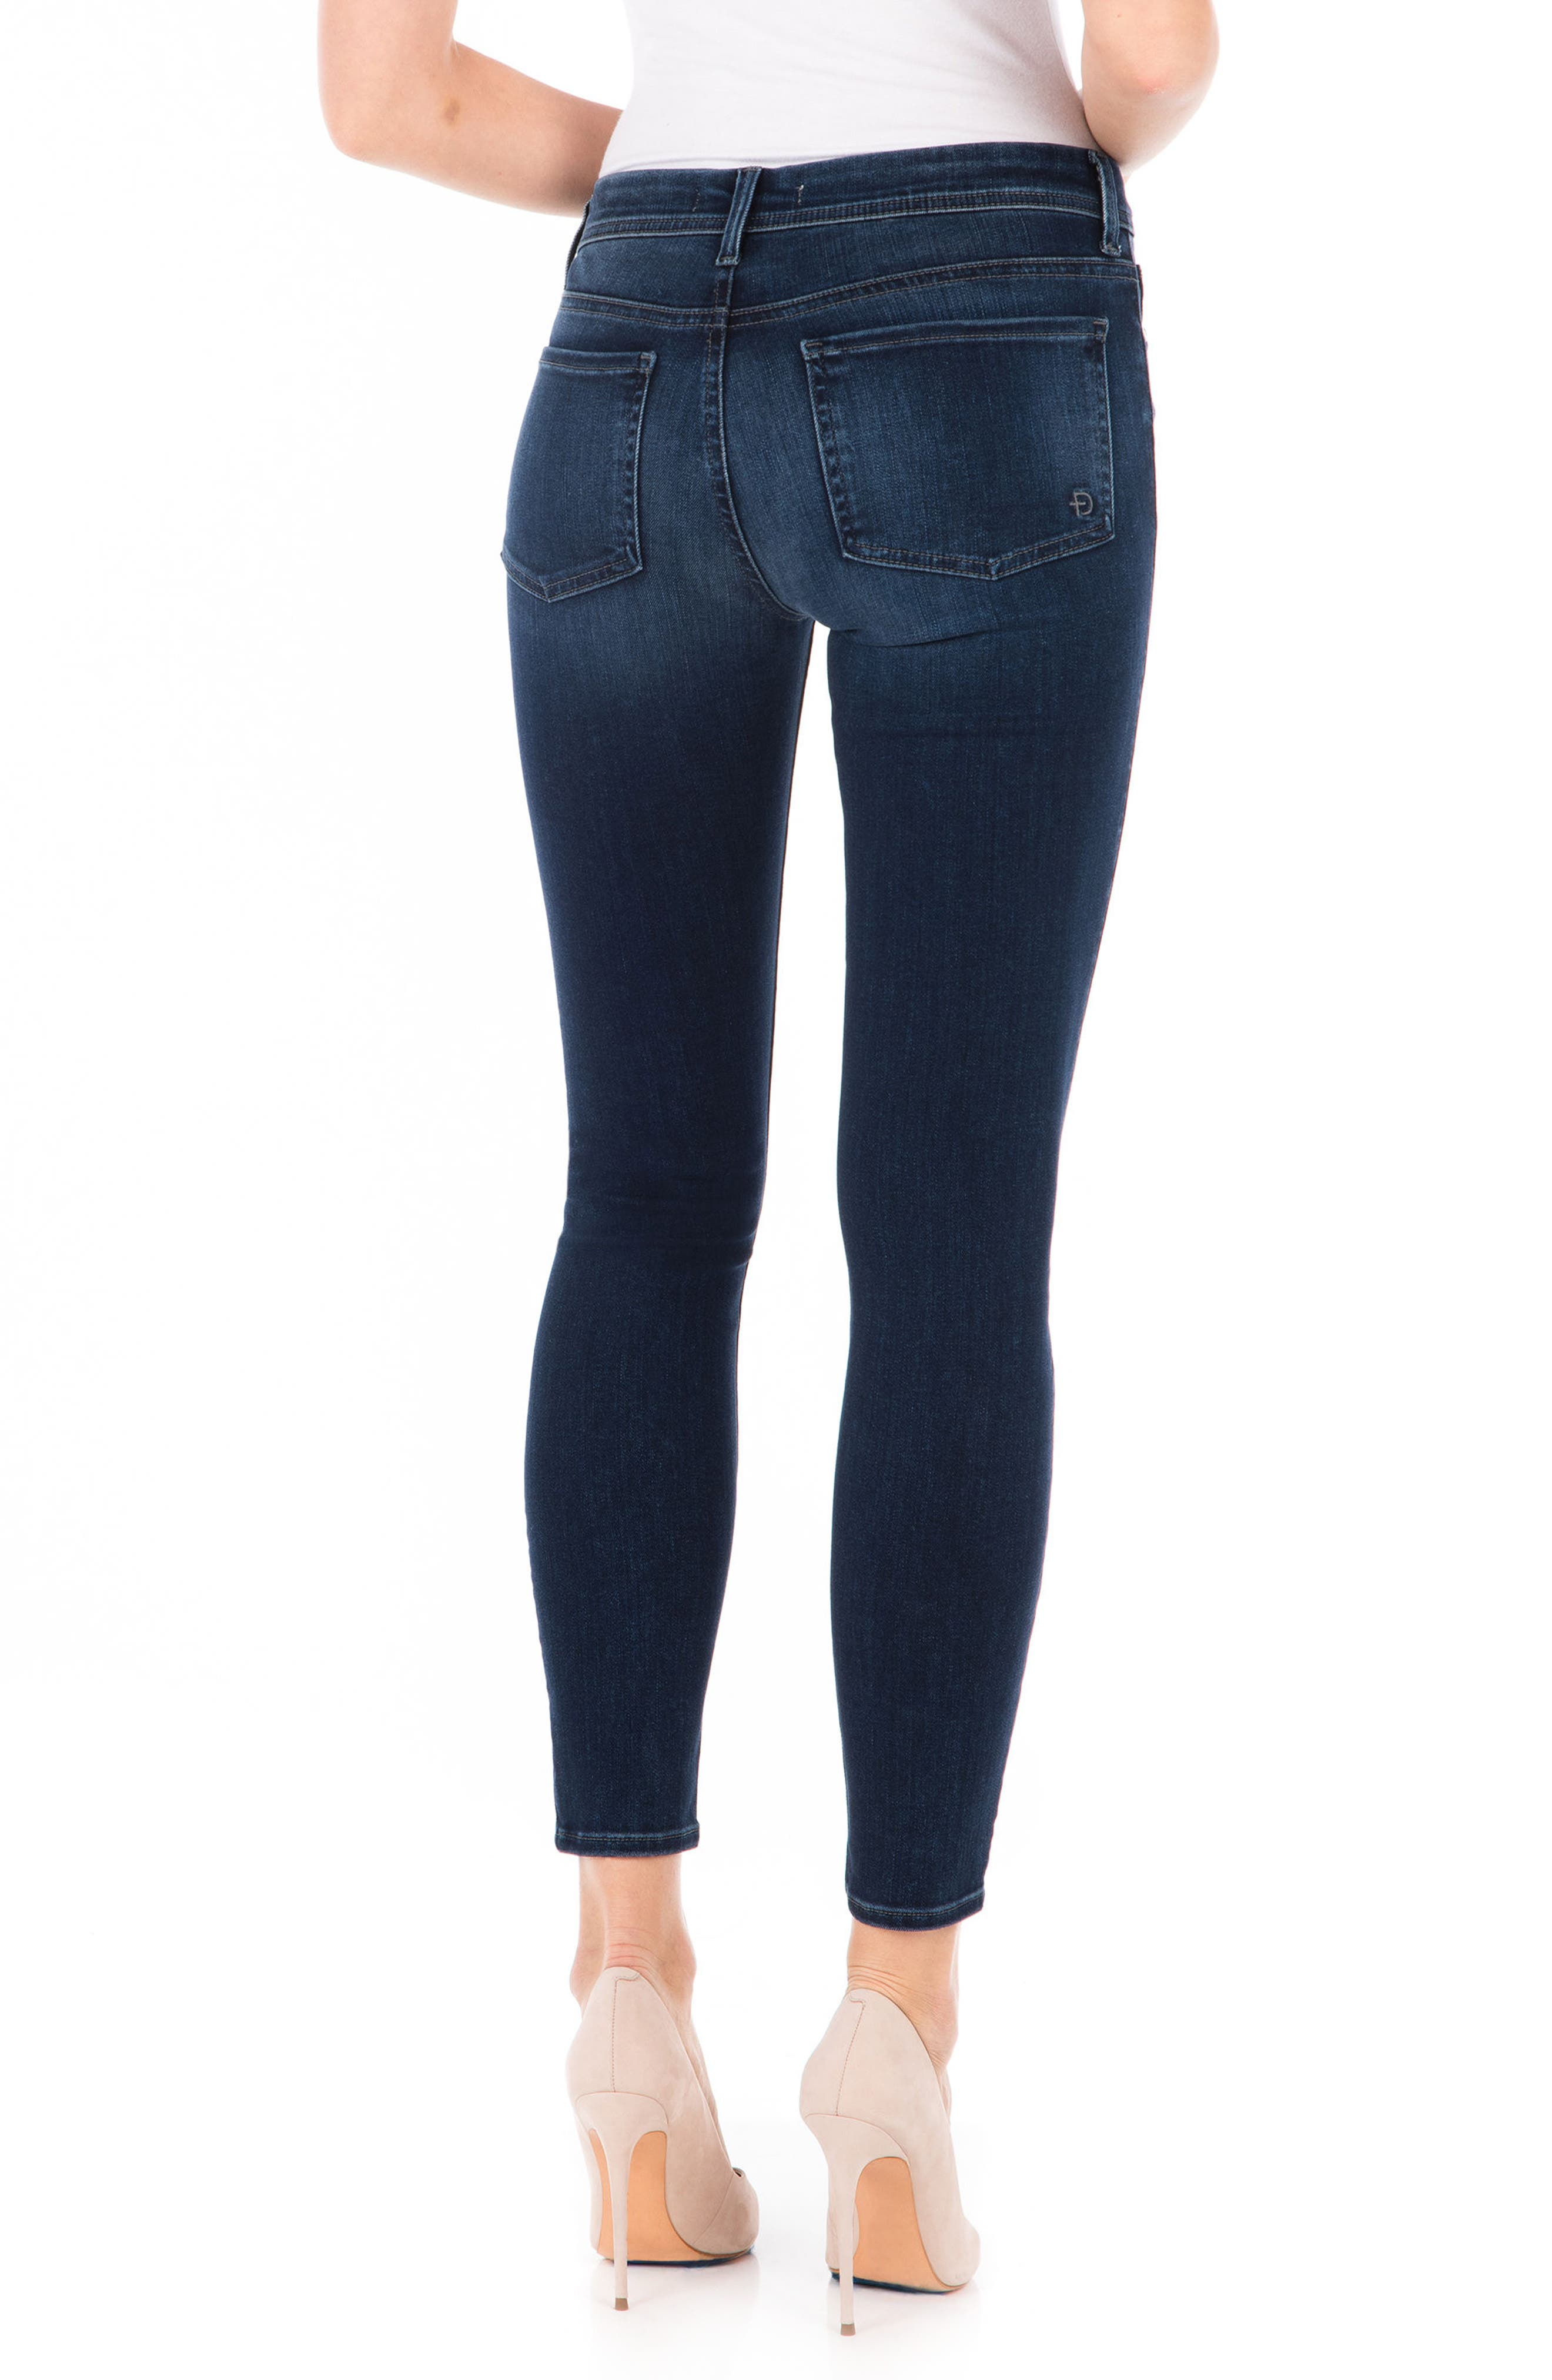 Sola Skinny Jeans,                             Alternate thumbnail 2, color,                             Blue Suede